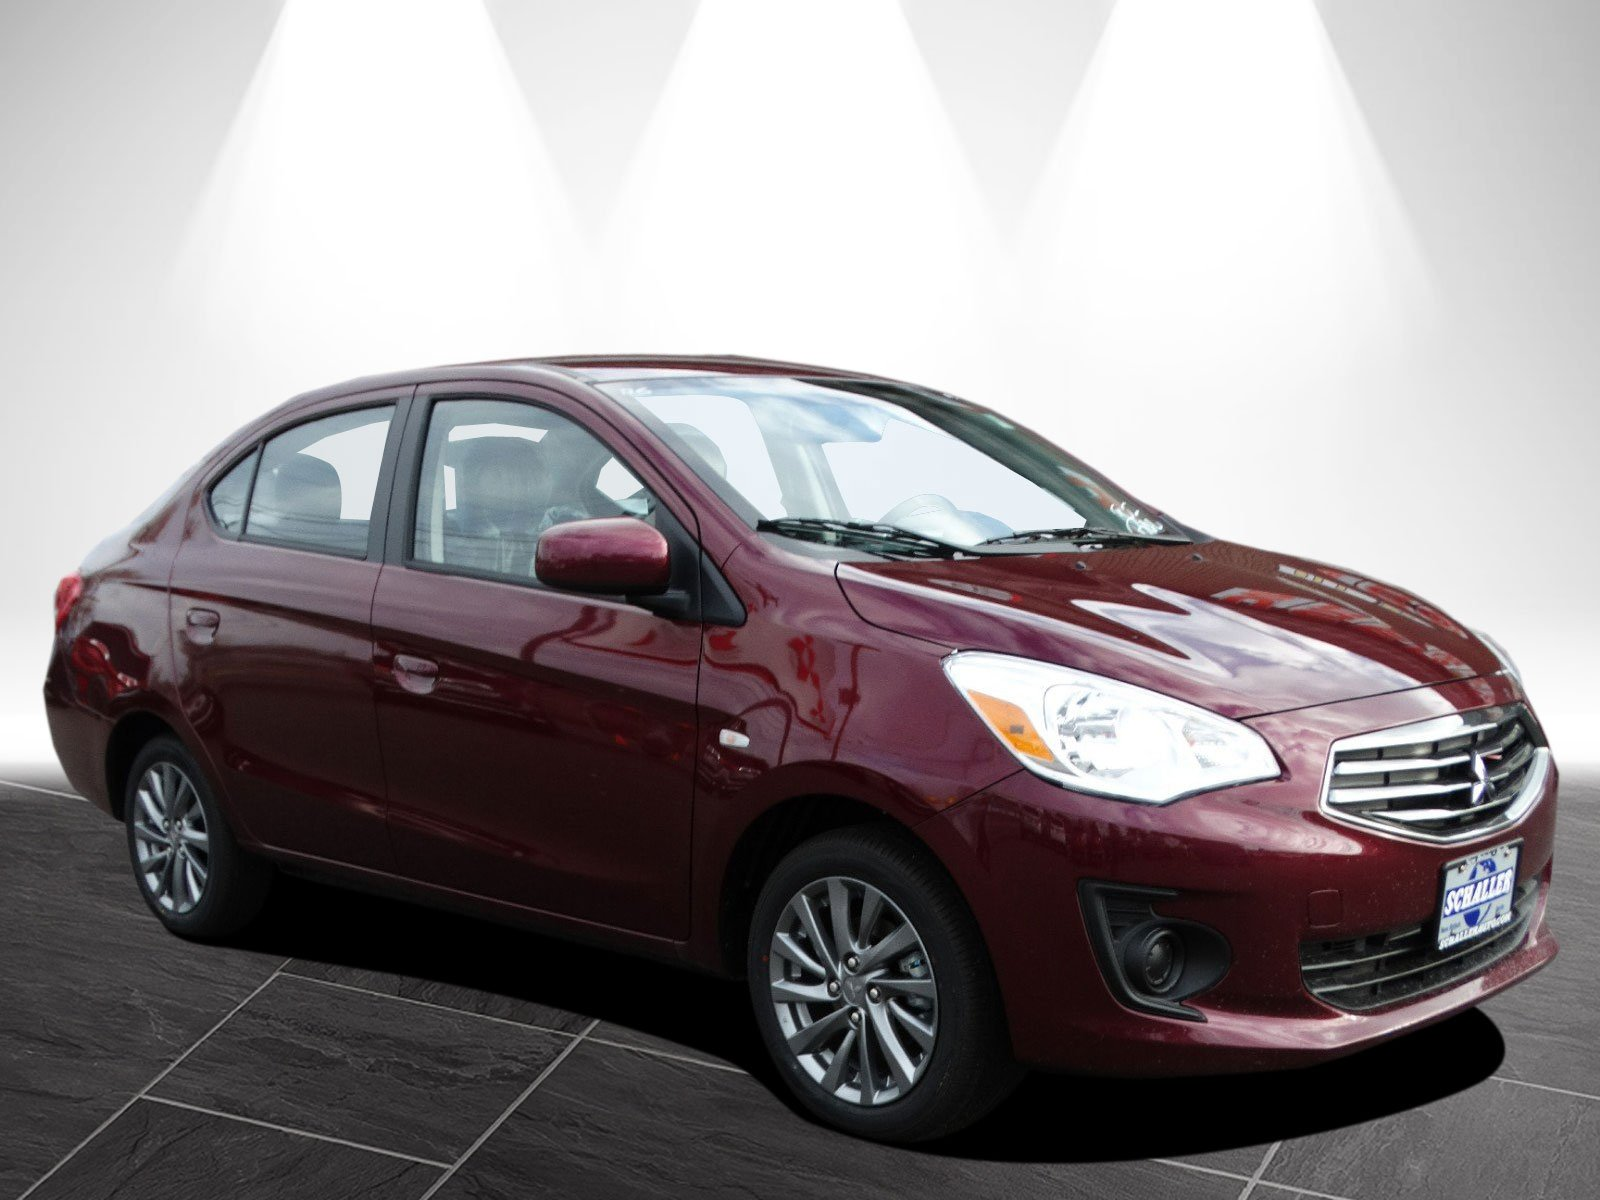 New 2018 Mitsubishi Mirage G4 ES 4dr Car in New Britain #12154 ...